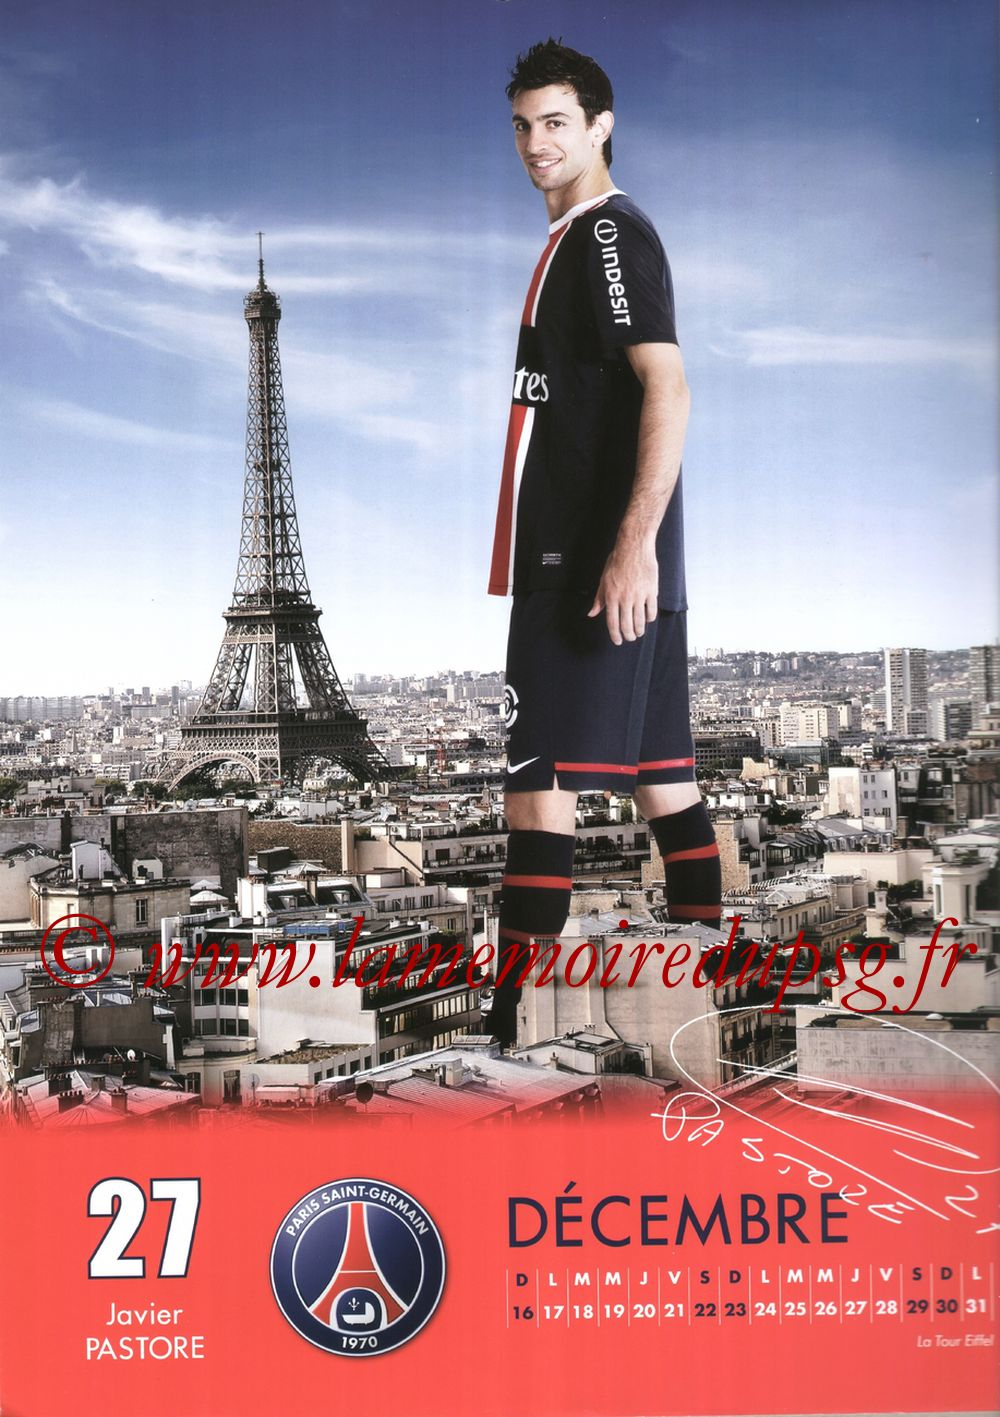 Calendrier PSG 2012 - Page 24 - Javier PASTORE